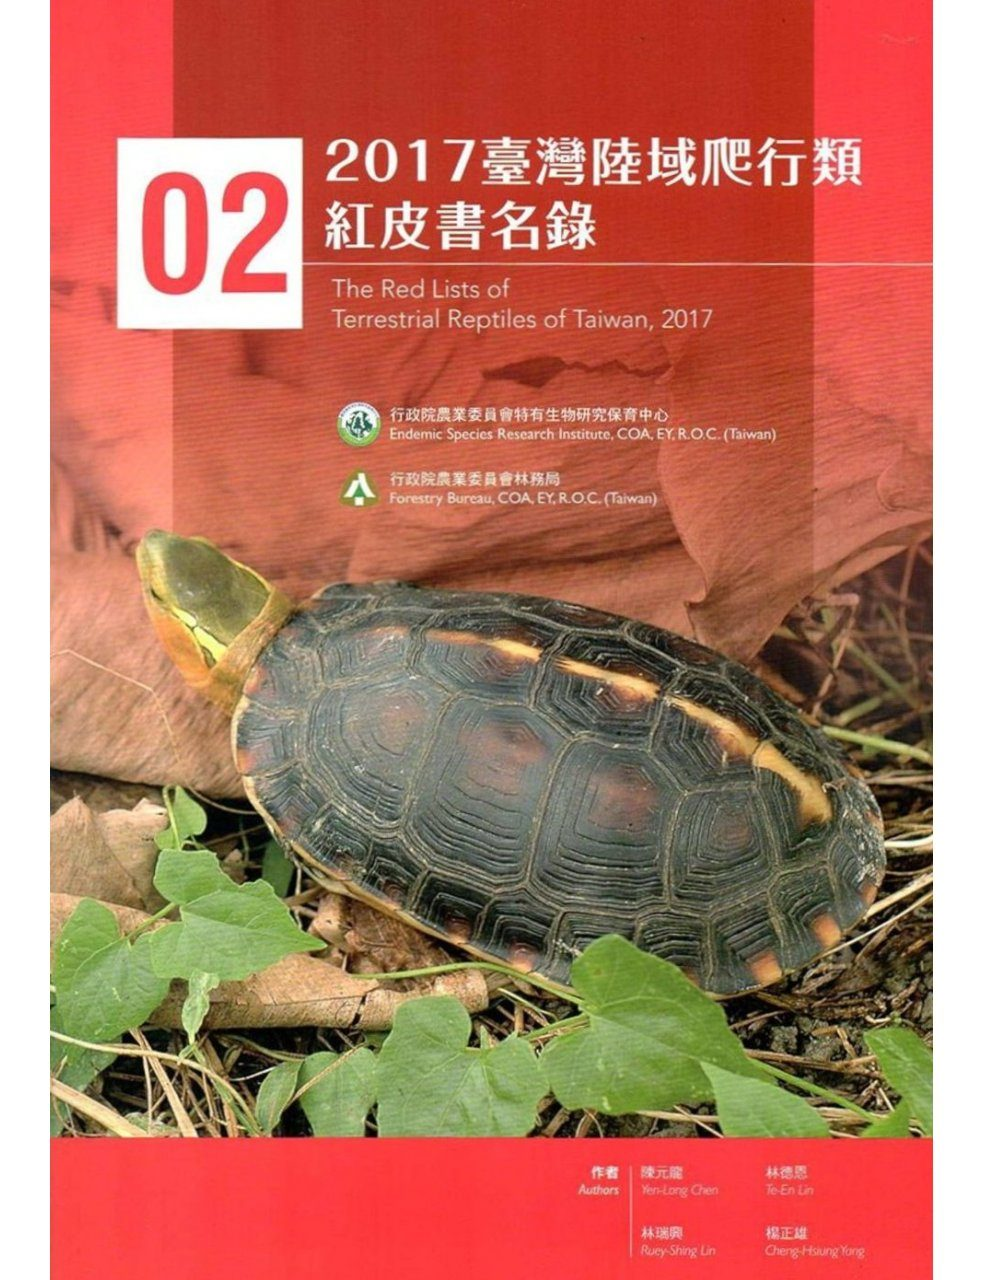 The Red Lists of Terrestrial Reptiles of Taiwan, 2017 [Chinese]